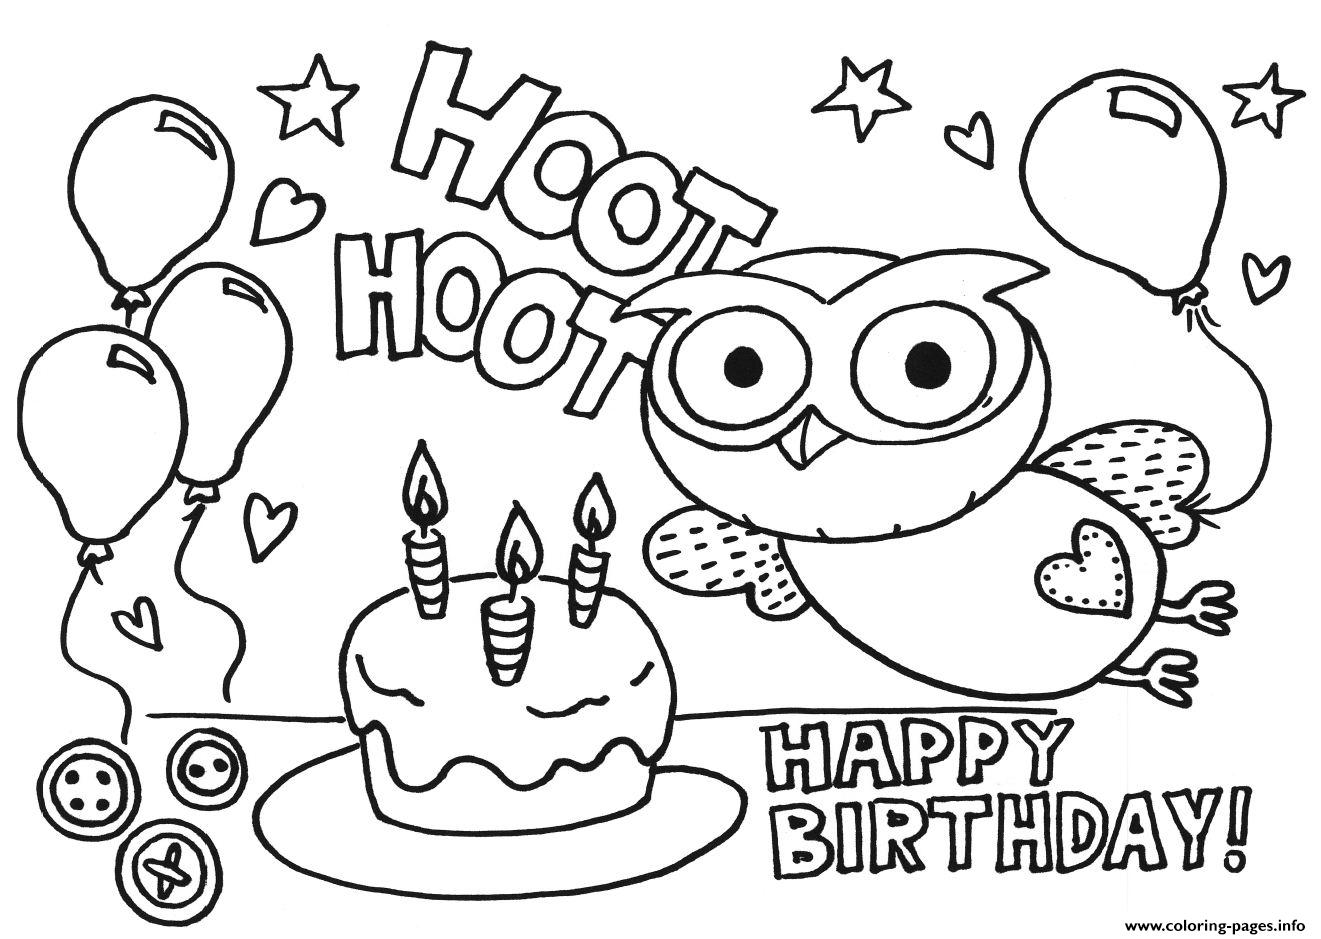 Happy Birthday Gigle Hoot Hoot09bc Coloring Pages Printable